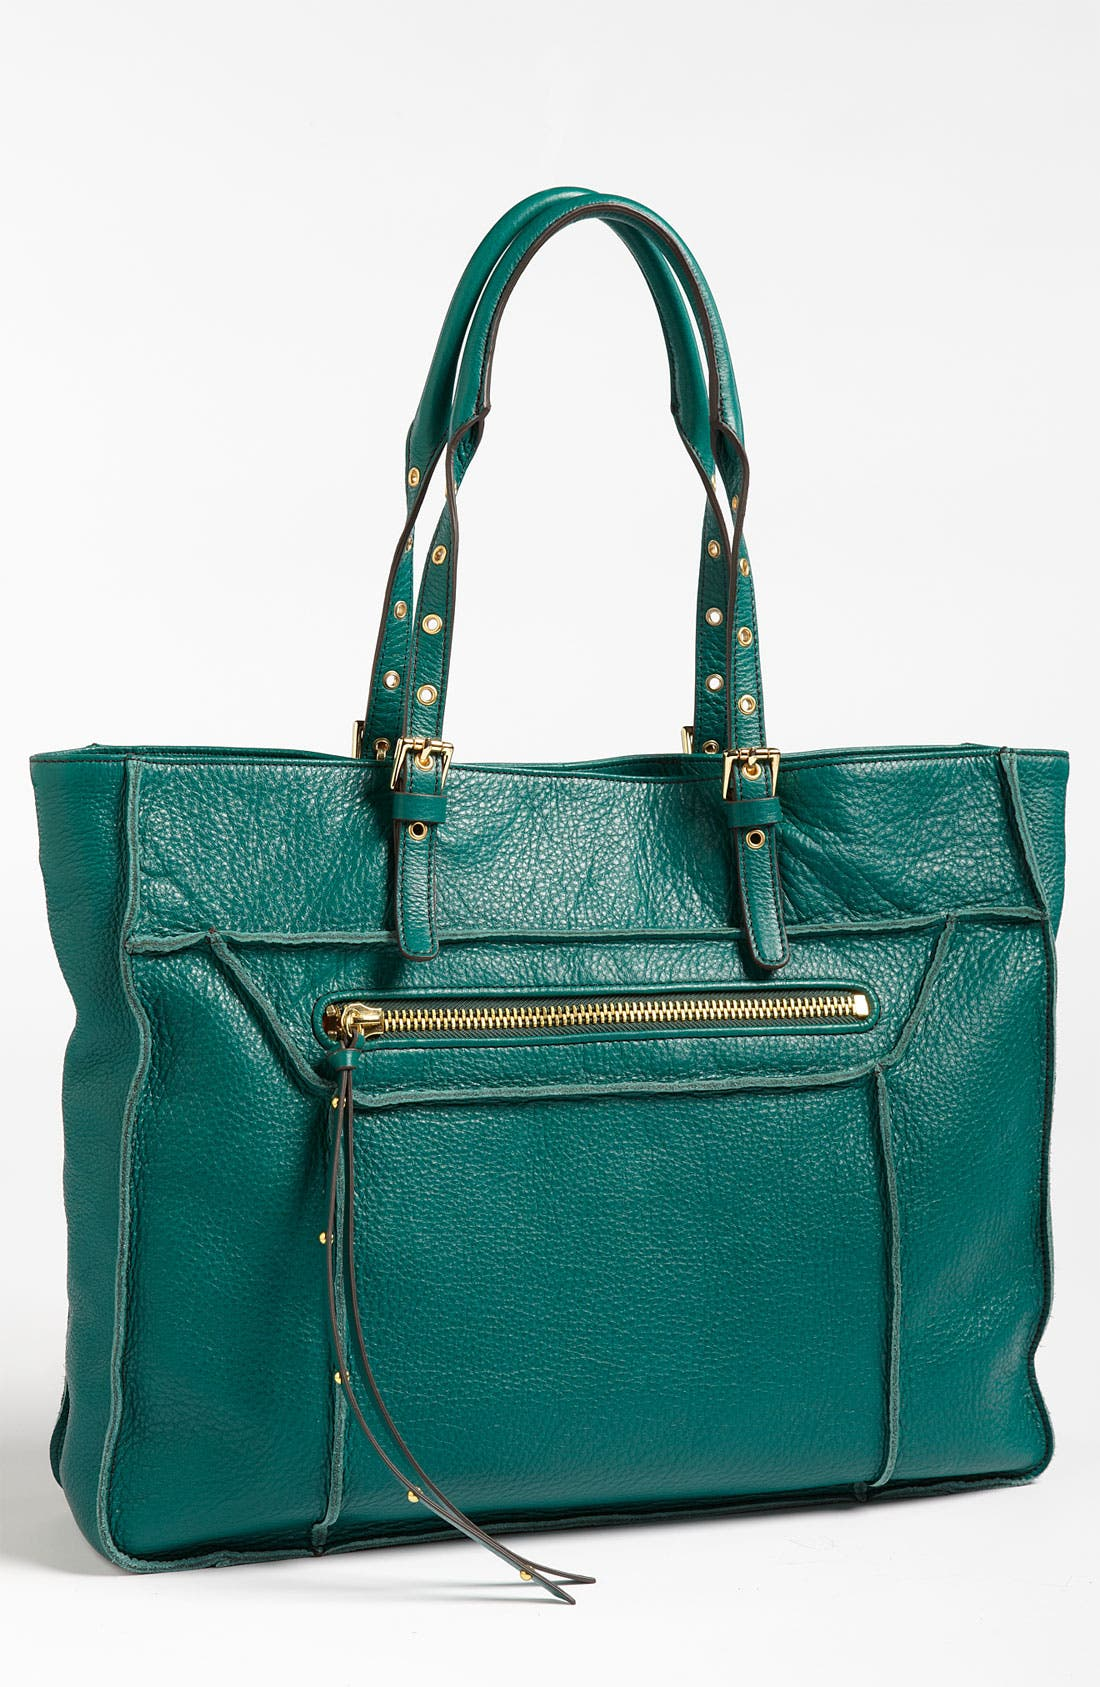 Alternate Image 1 Selected - Steven by Steve Madden 'France' Calfskin Leather Tote